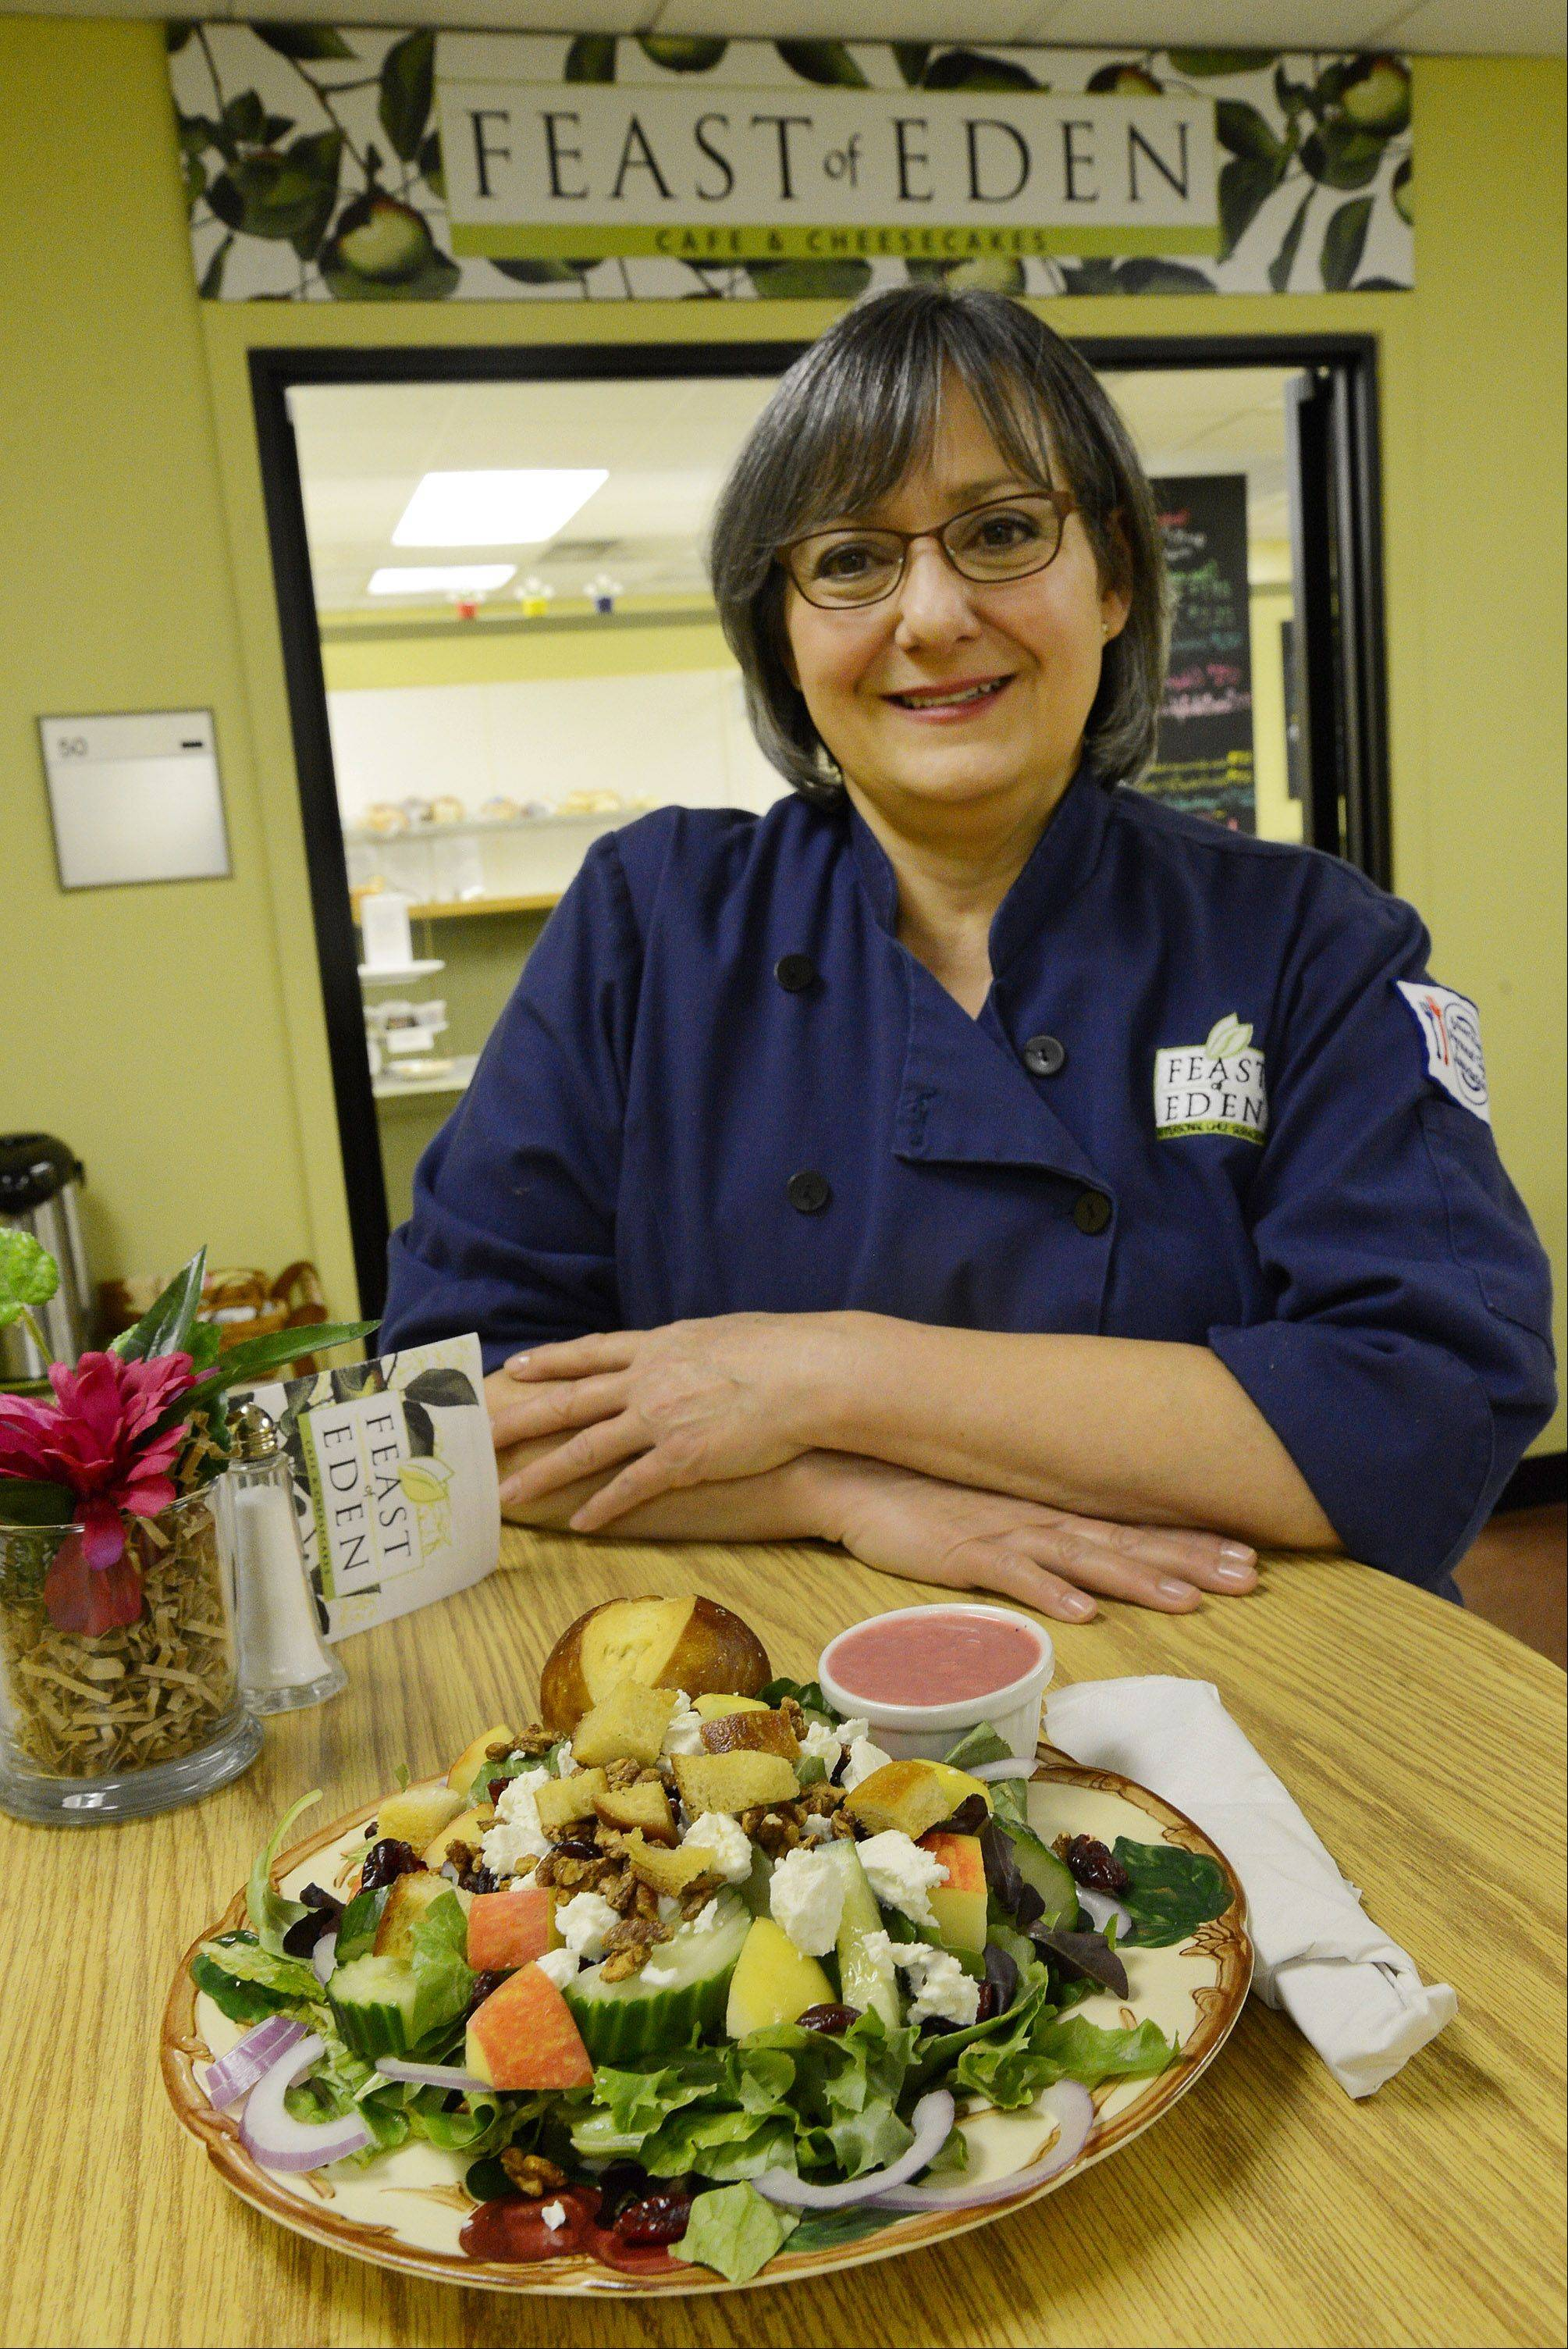 Lisa Bellan creates seasonal salads, sandwiches and soups for workers and visitors to the Harris Bank building in Palatine. She'll even pack up dishes to be taken home and enjoyed for dinner.